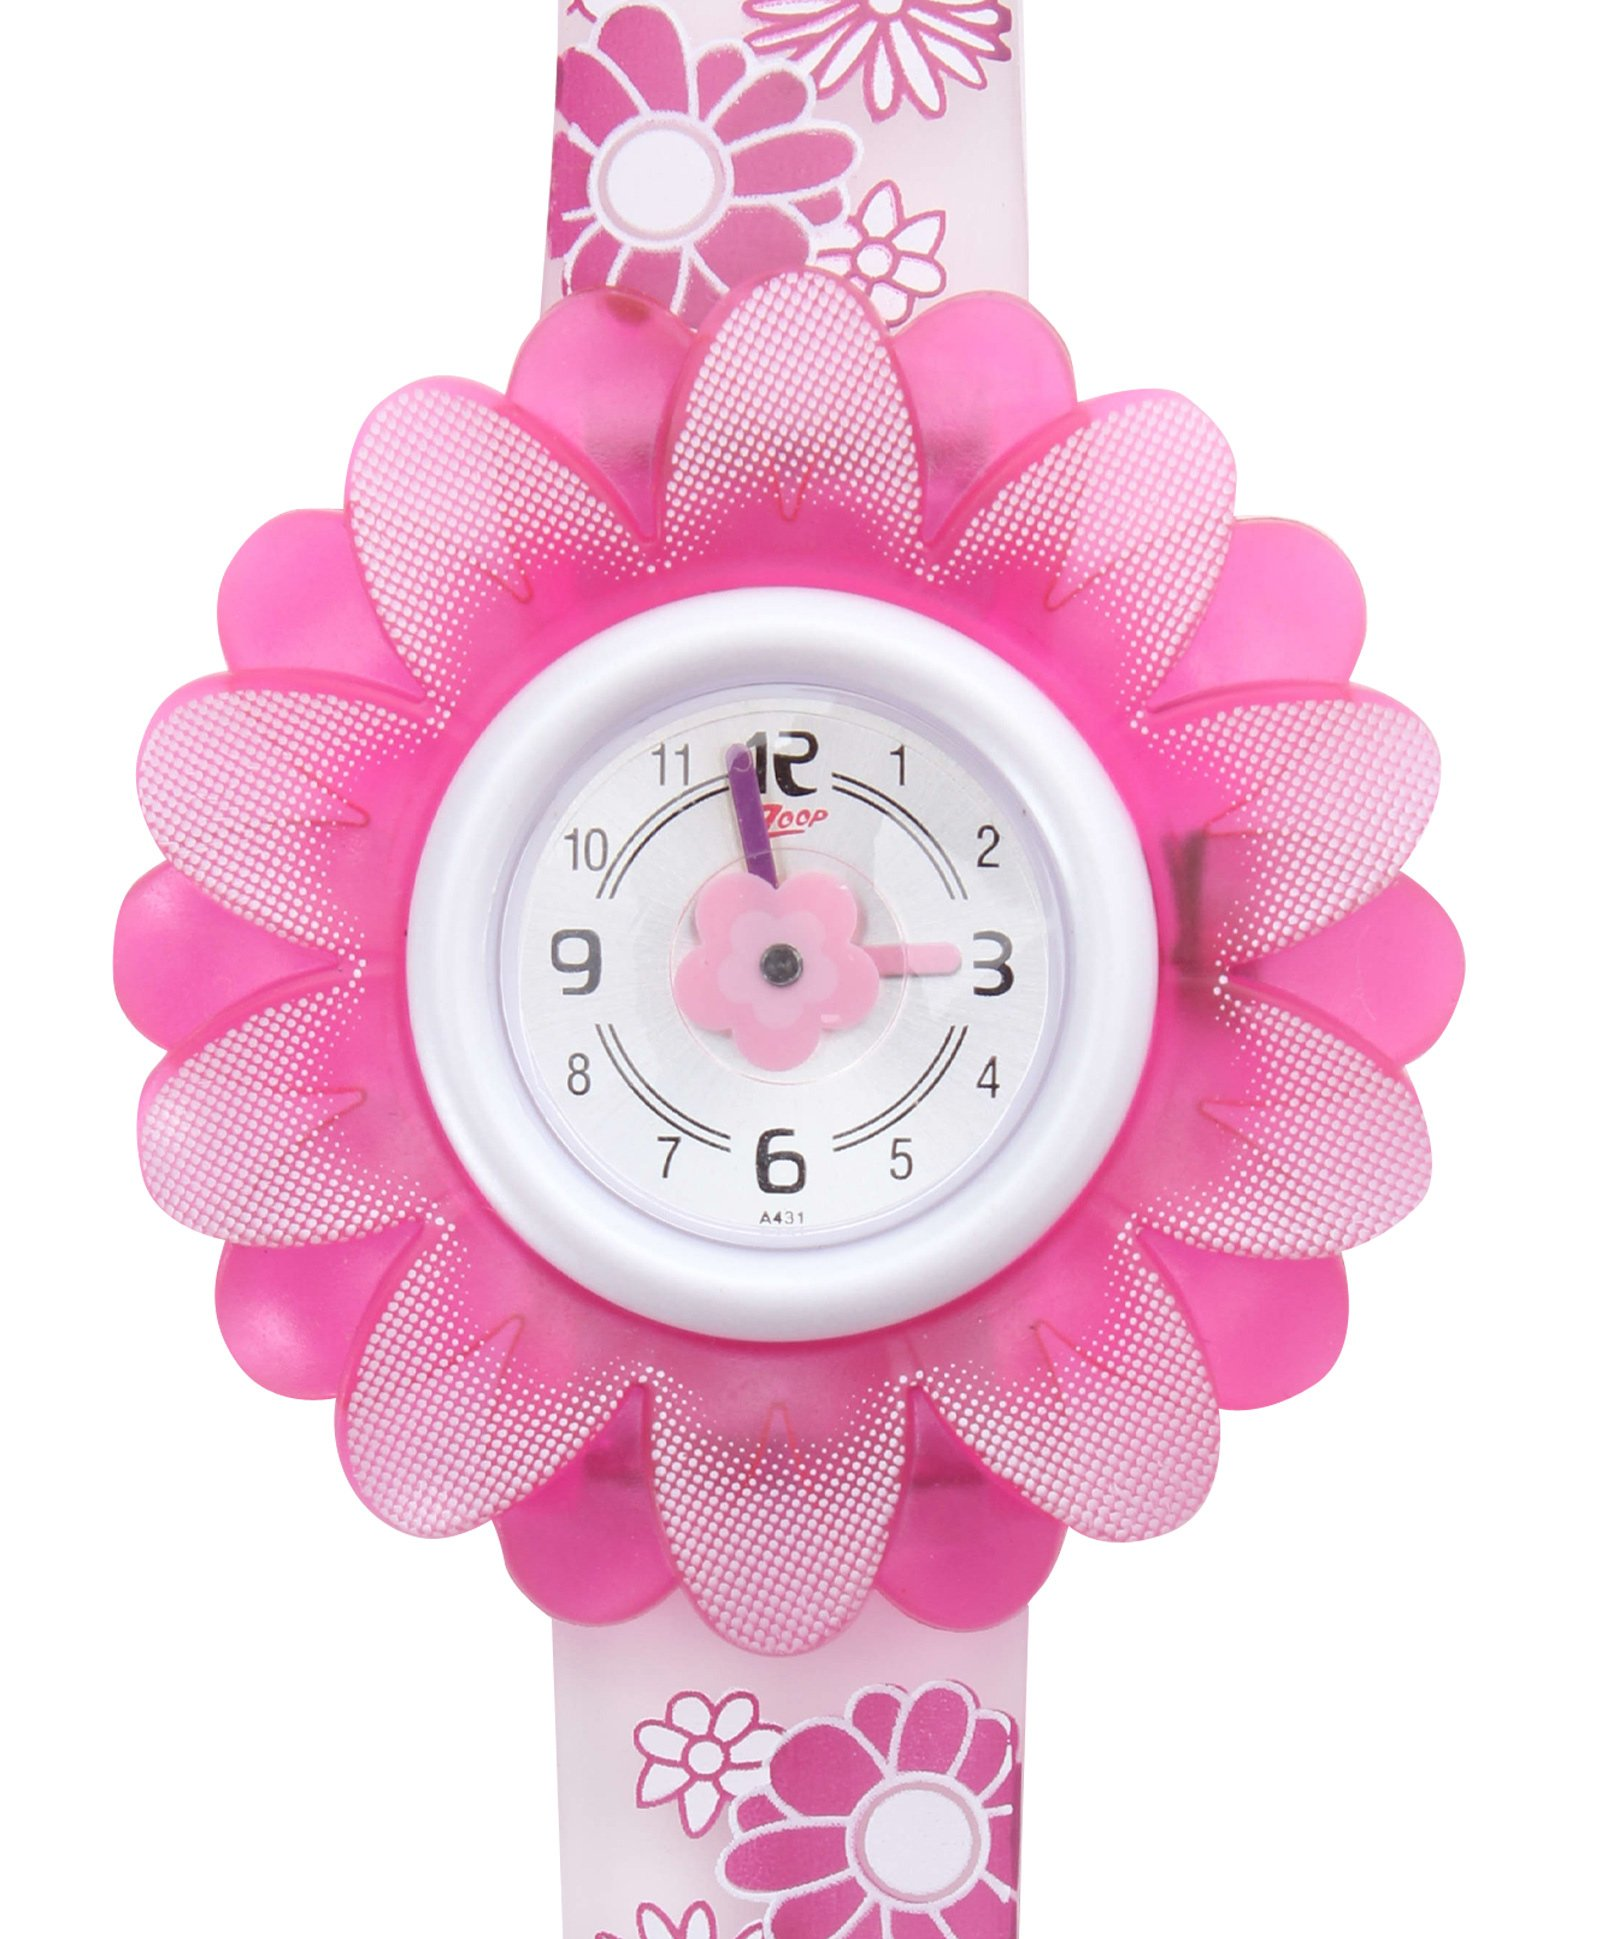 Titan brand watch2015 for girls